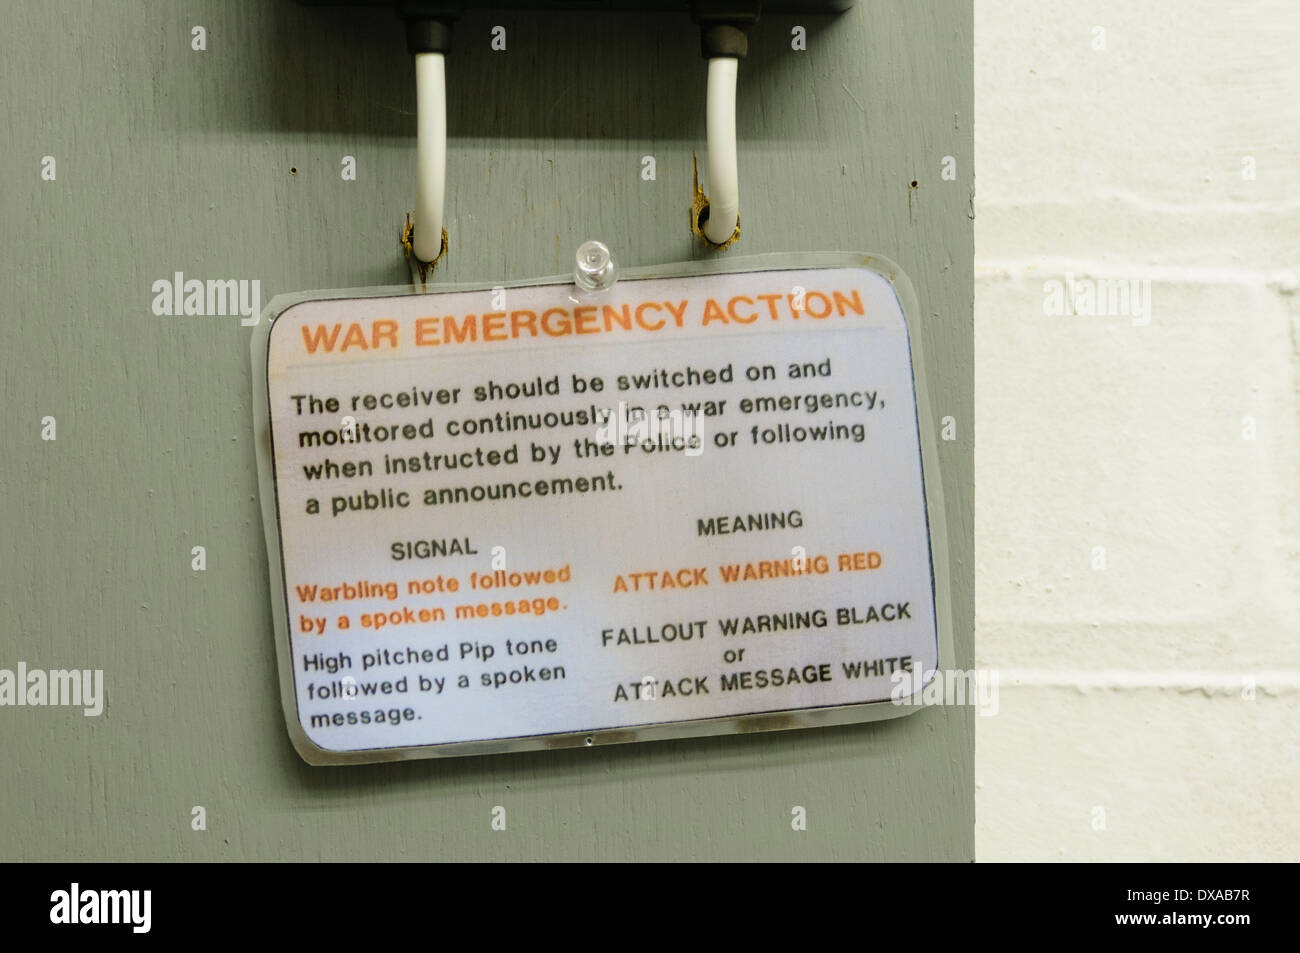 War Emergency Action notice card in a 1980s nuclear bunker - Stock Image